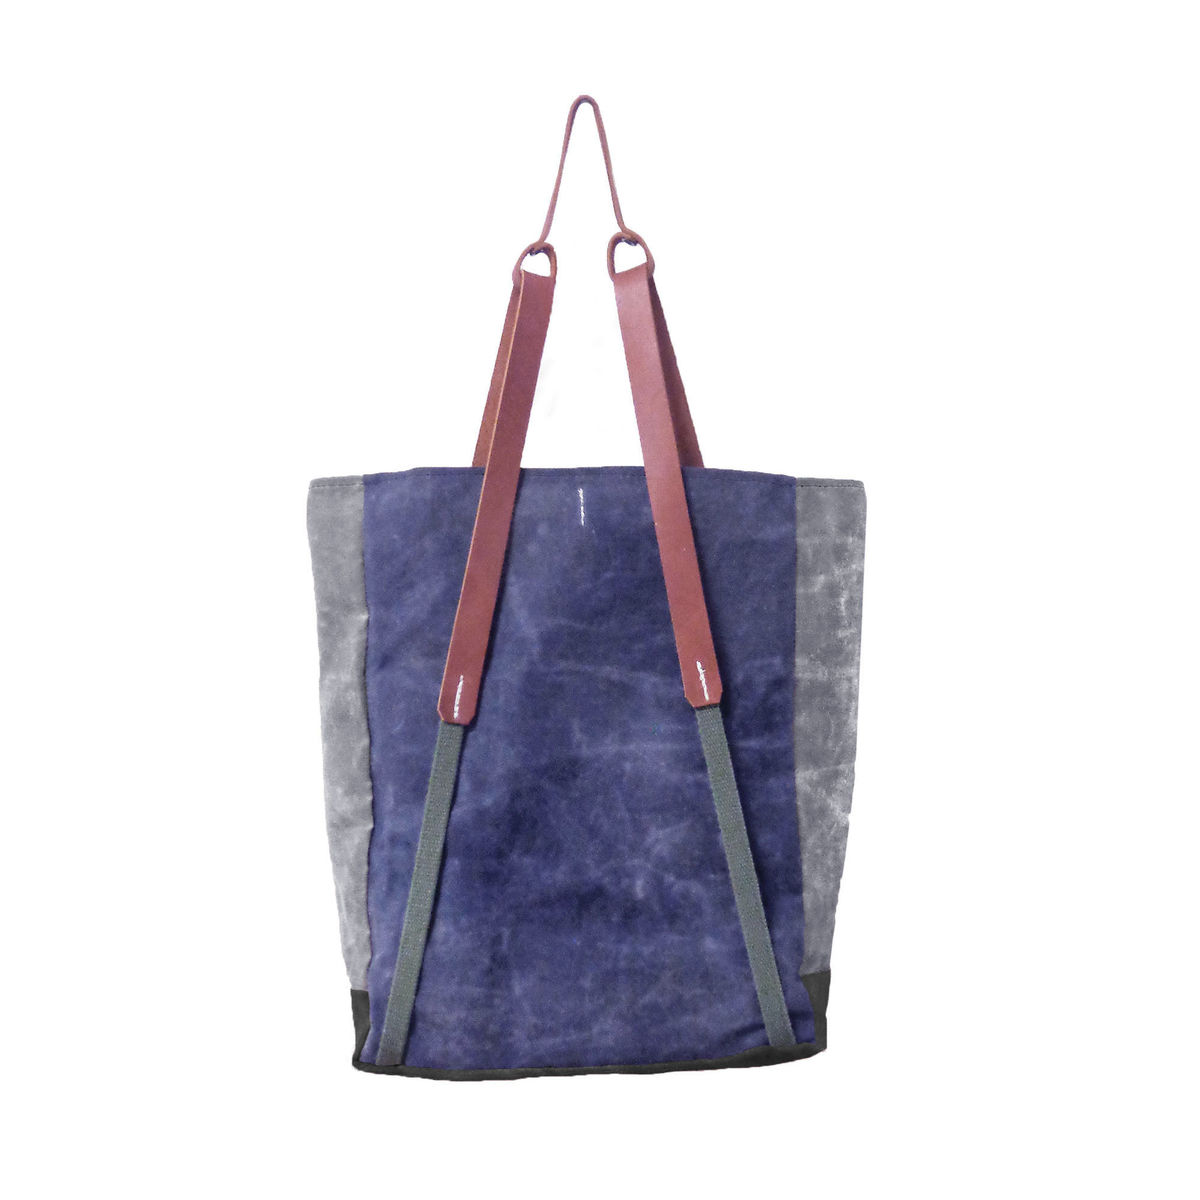 Convertible Bodega Tote, Backpack - Navy - product images  of